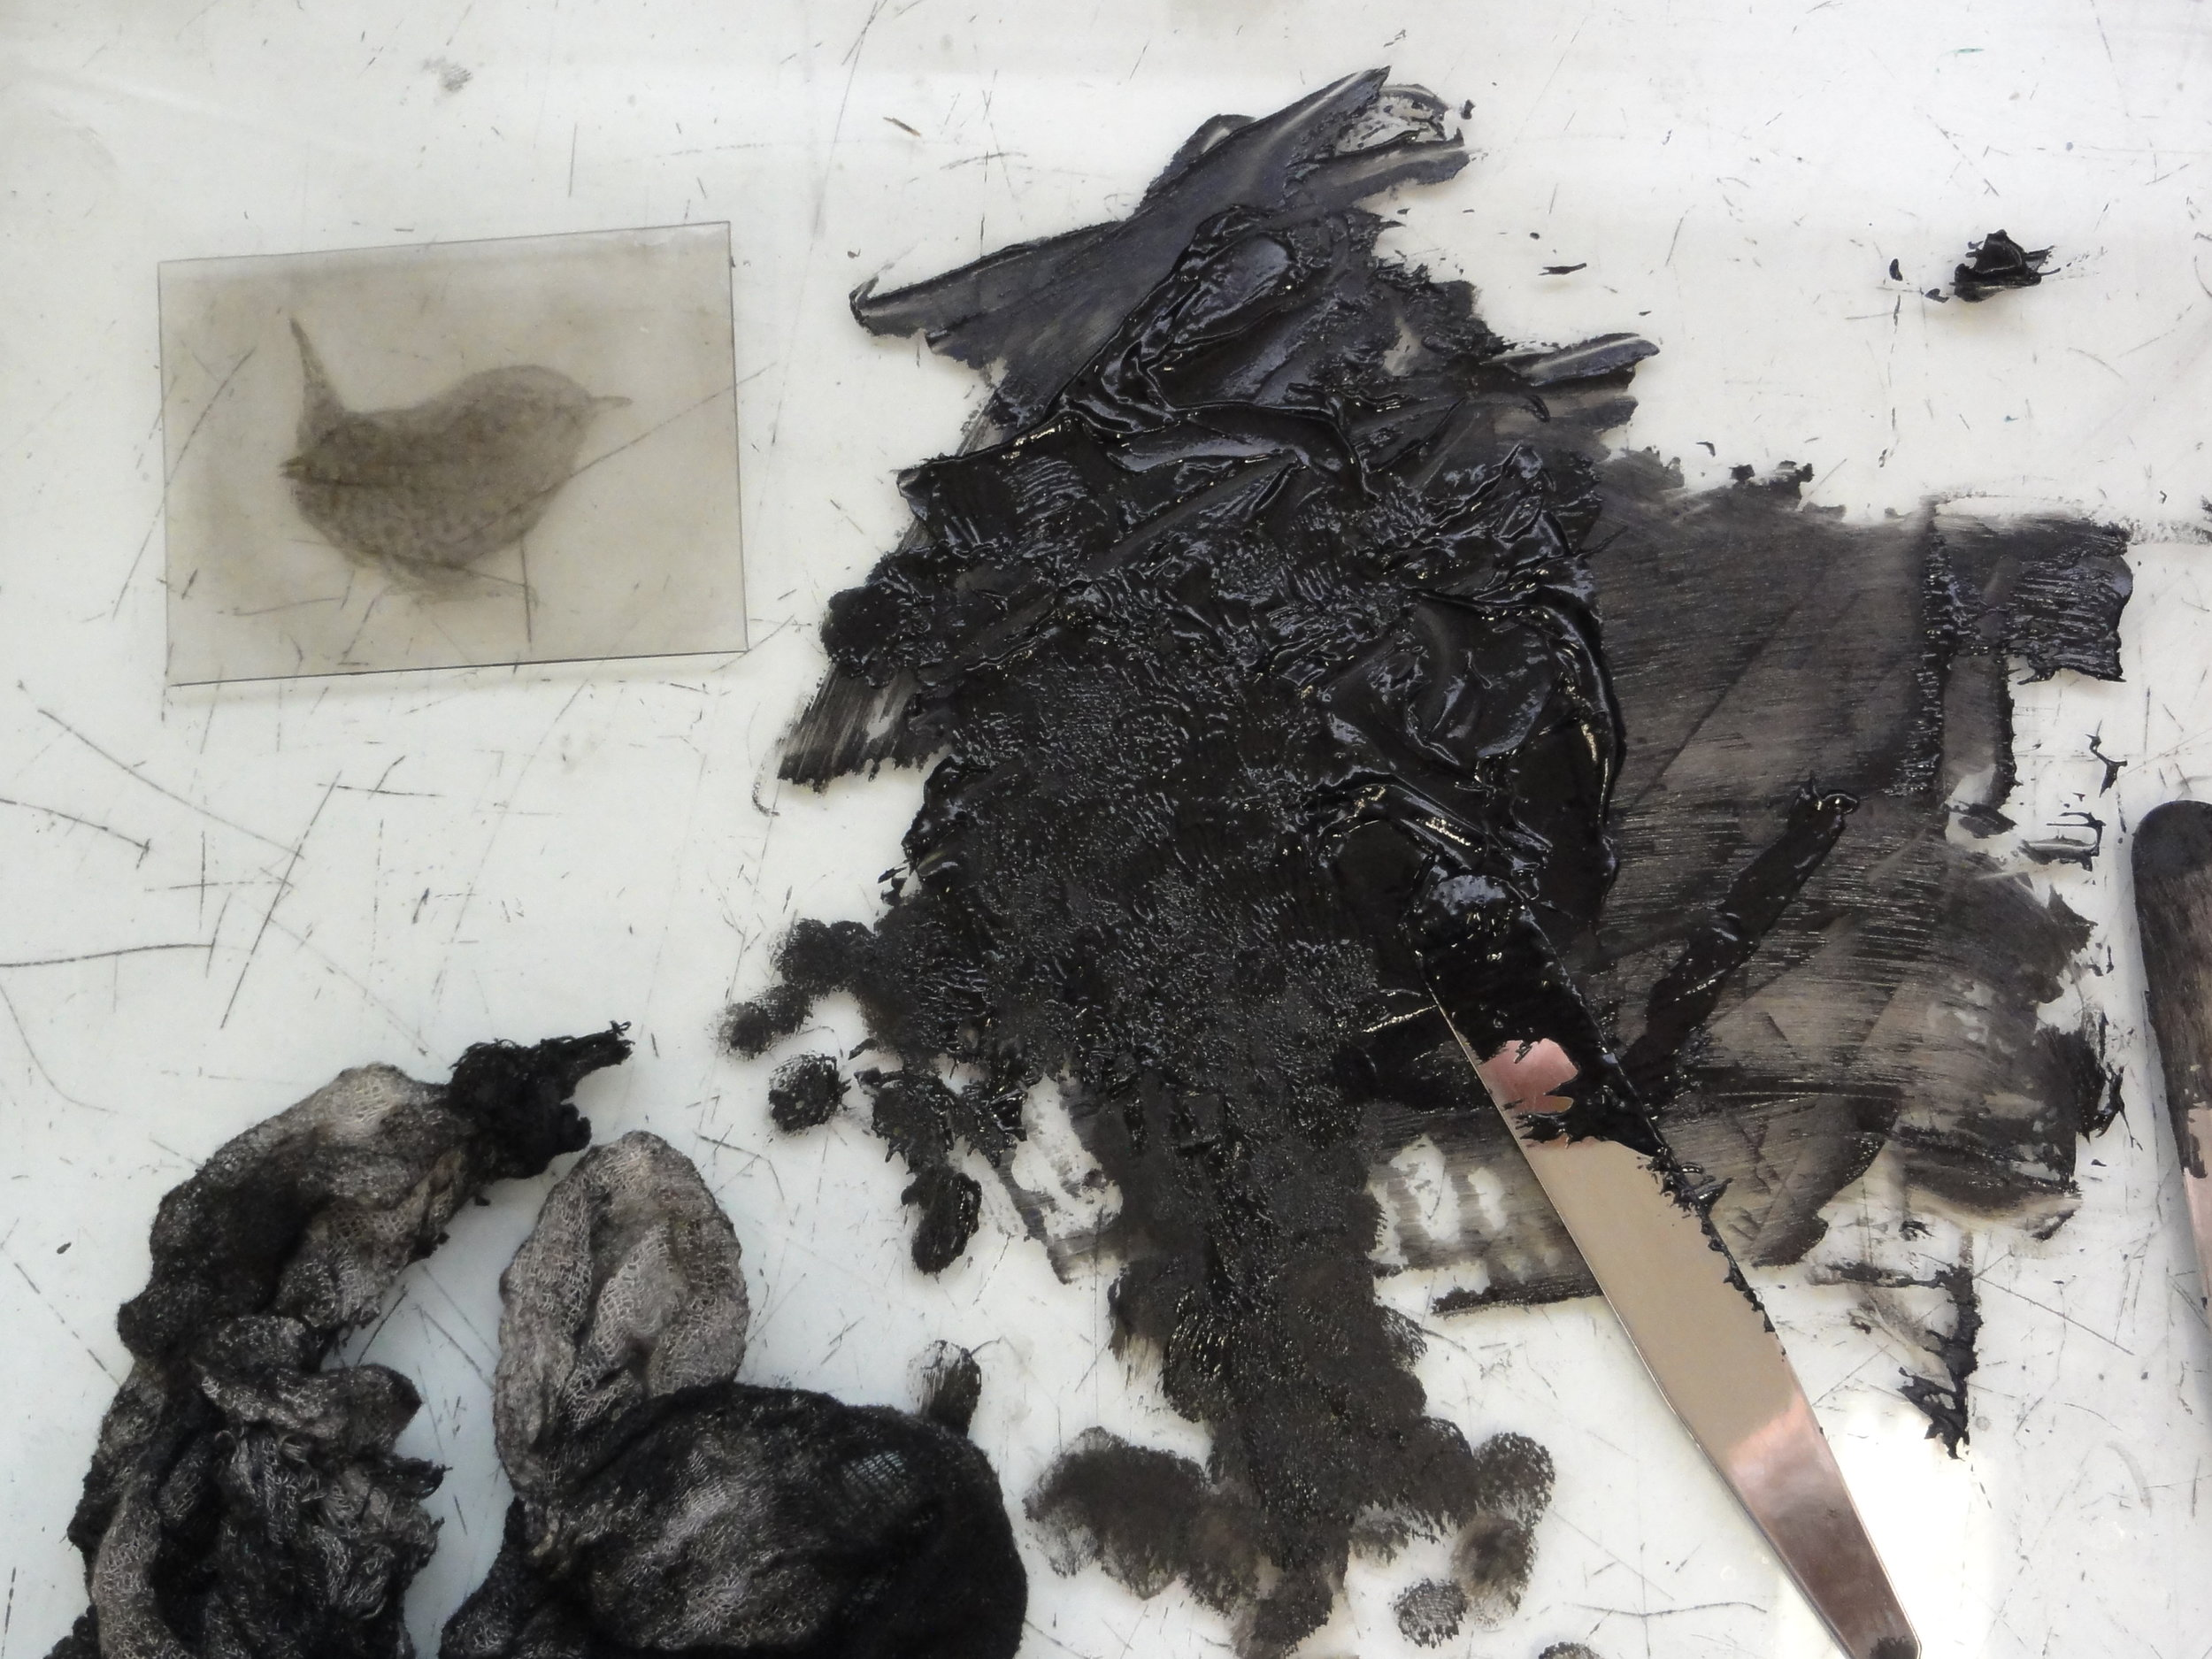 Mixing linseed oil to etching ink for drypoint print of wren